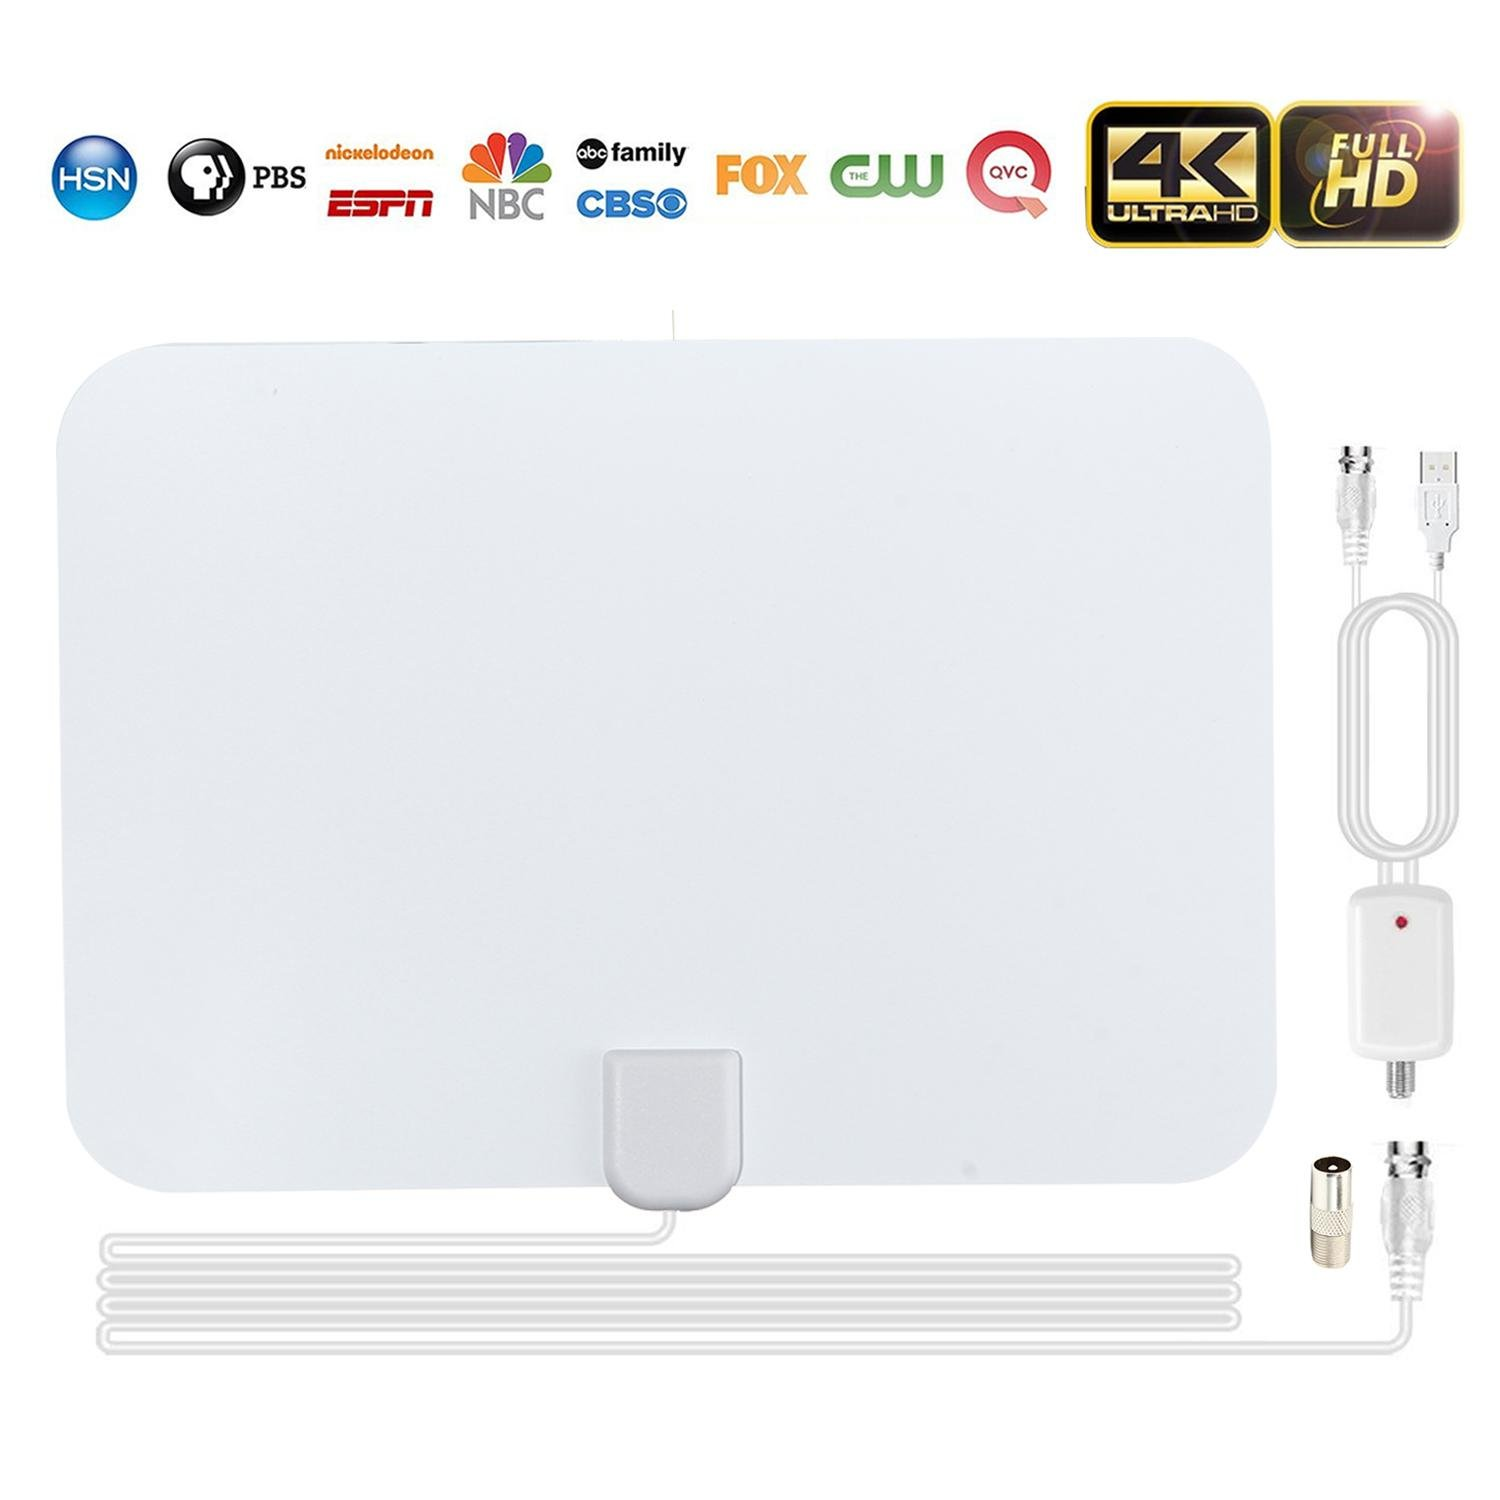 HD Digital TV Antenna, Leegoal Amplified 80 Miles Long Range Reception Free 1080P 4K HDTV Indoor Antennas with Detachable Amplifier Signal Booster and 13.2Ft Coax Cable 8025779154152